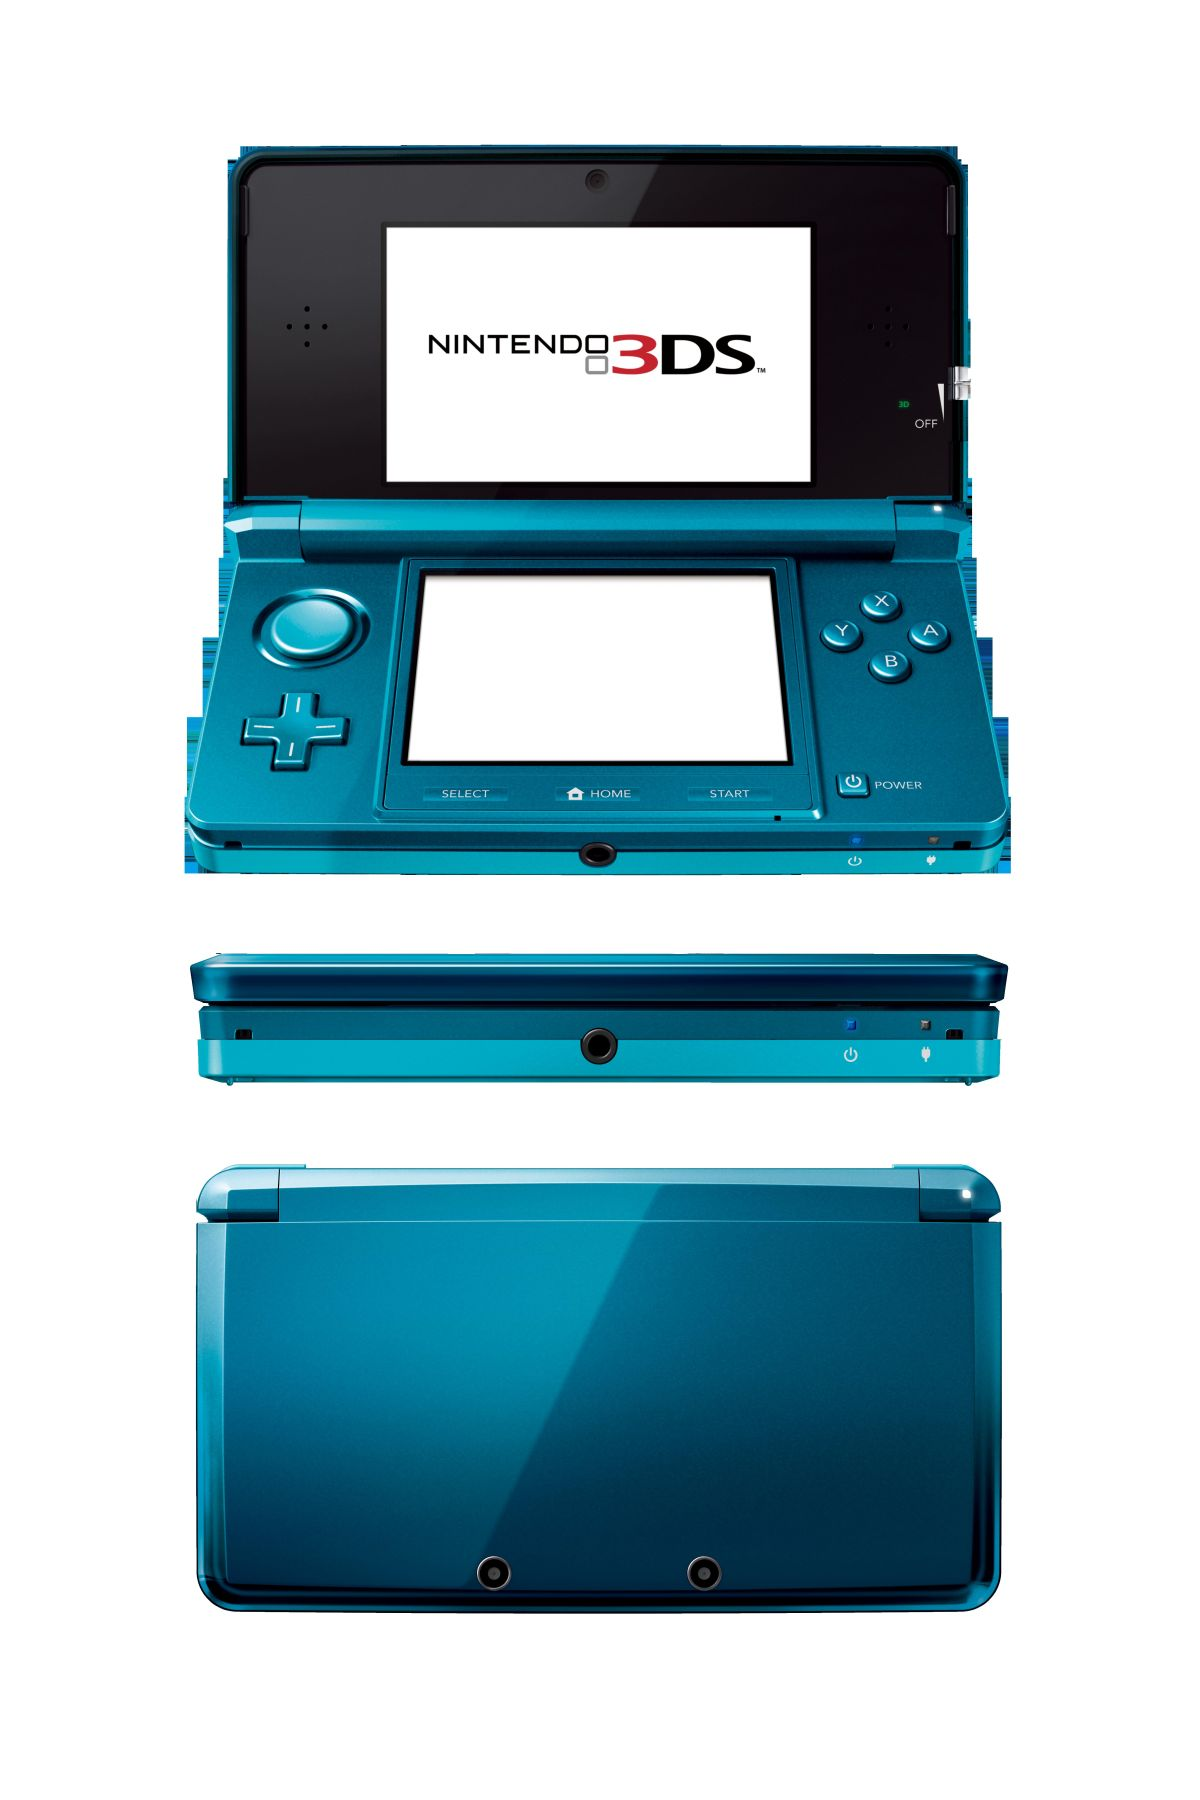 Shop Target for Nintendo 3DS you will love at great low prices. Free shipping & returns plus same-day pick-up in store.